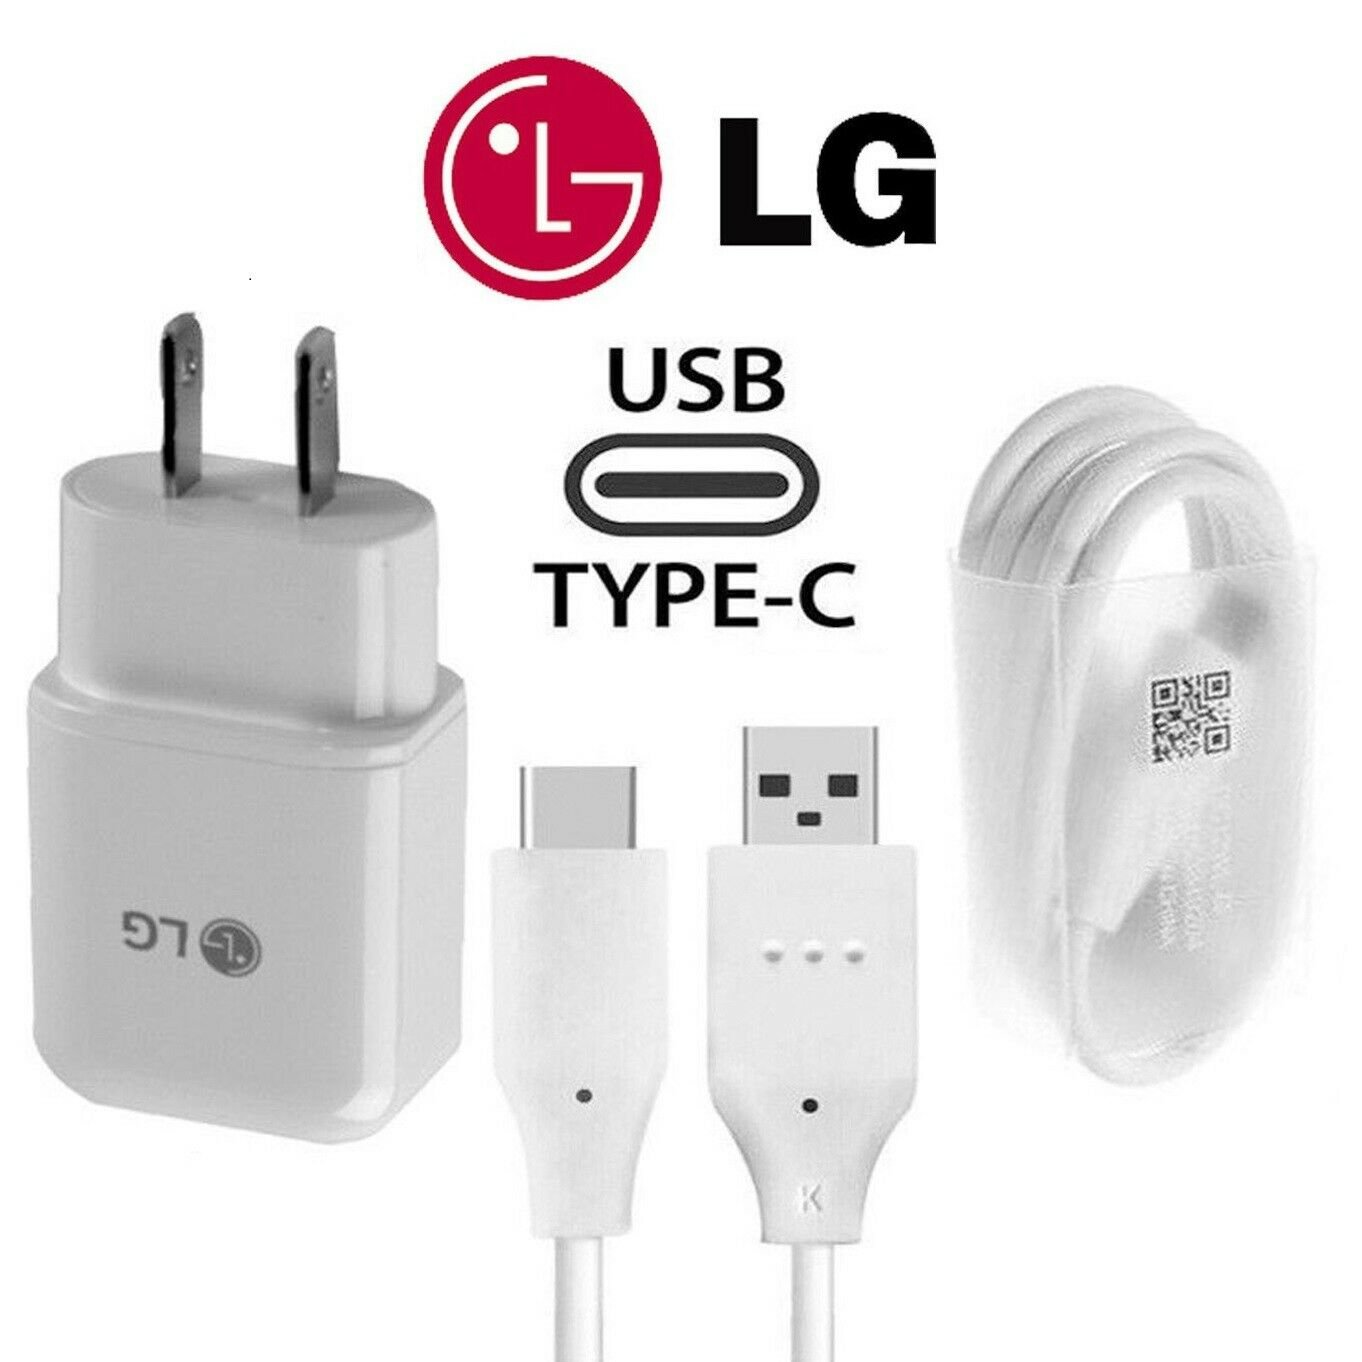 ORIGINAL LG Rapid Fast Wall Charger Plus Type C Cable For LG V40 G7